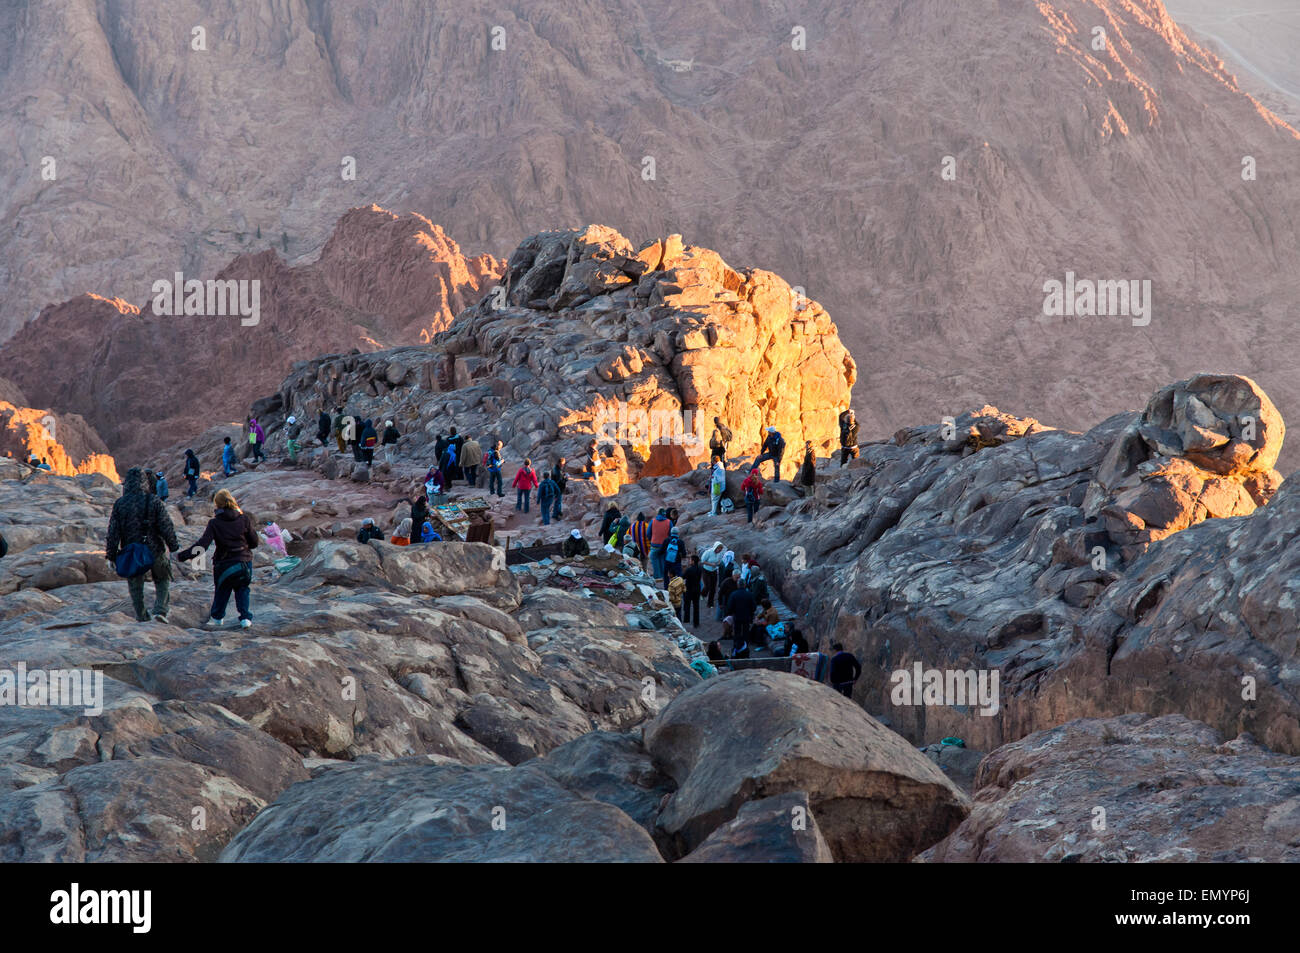 Pilgrims and tourists on the pathway from the Mount Sinai peak in early morning - Stock Image